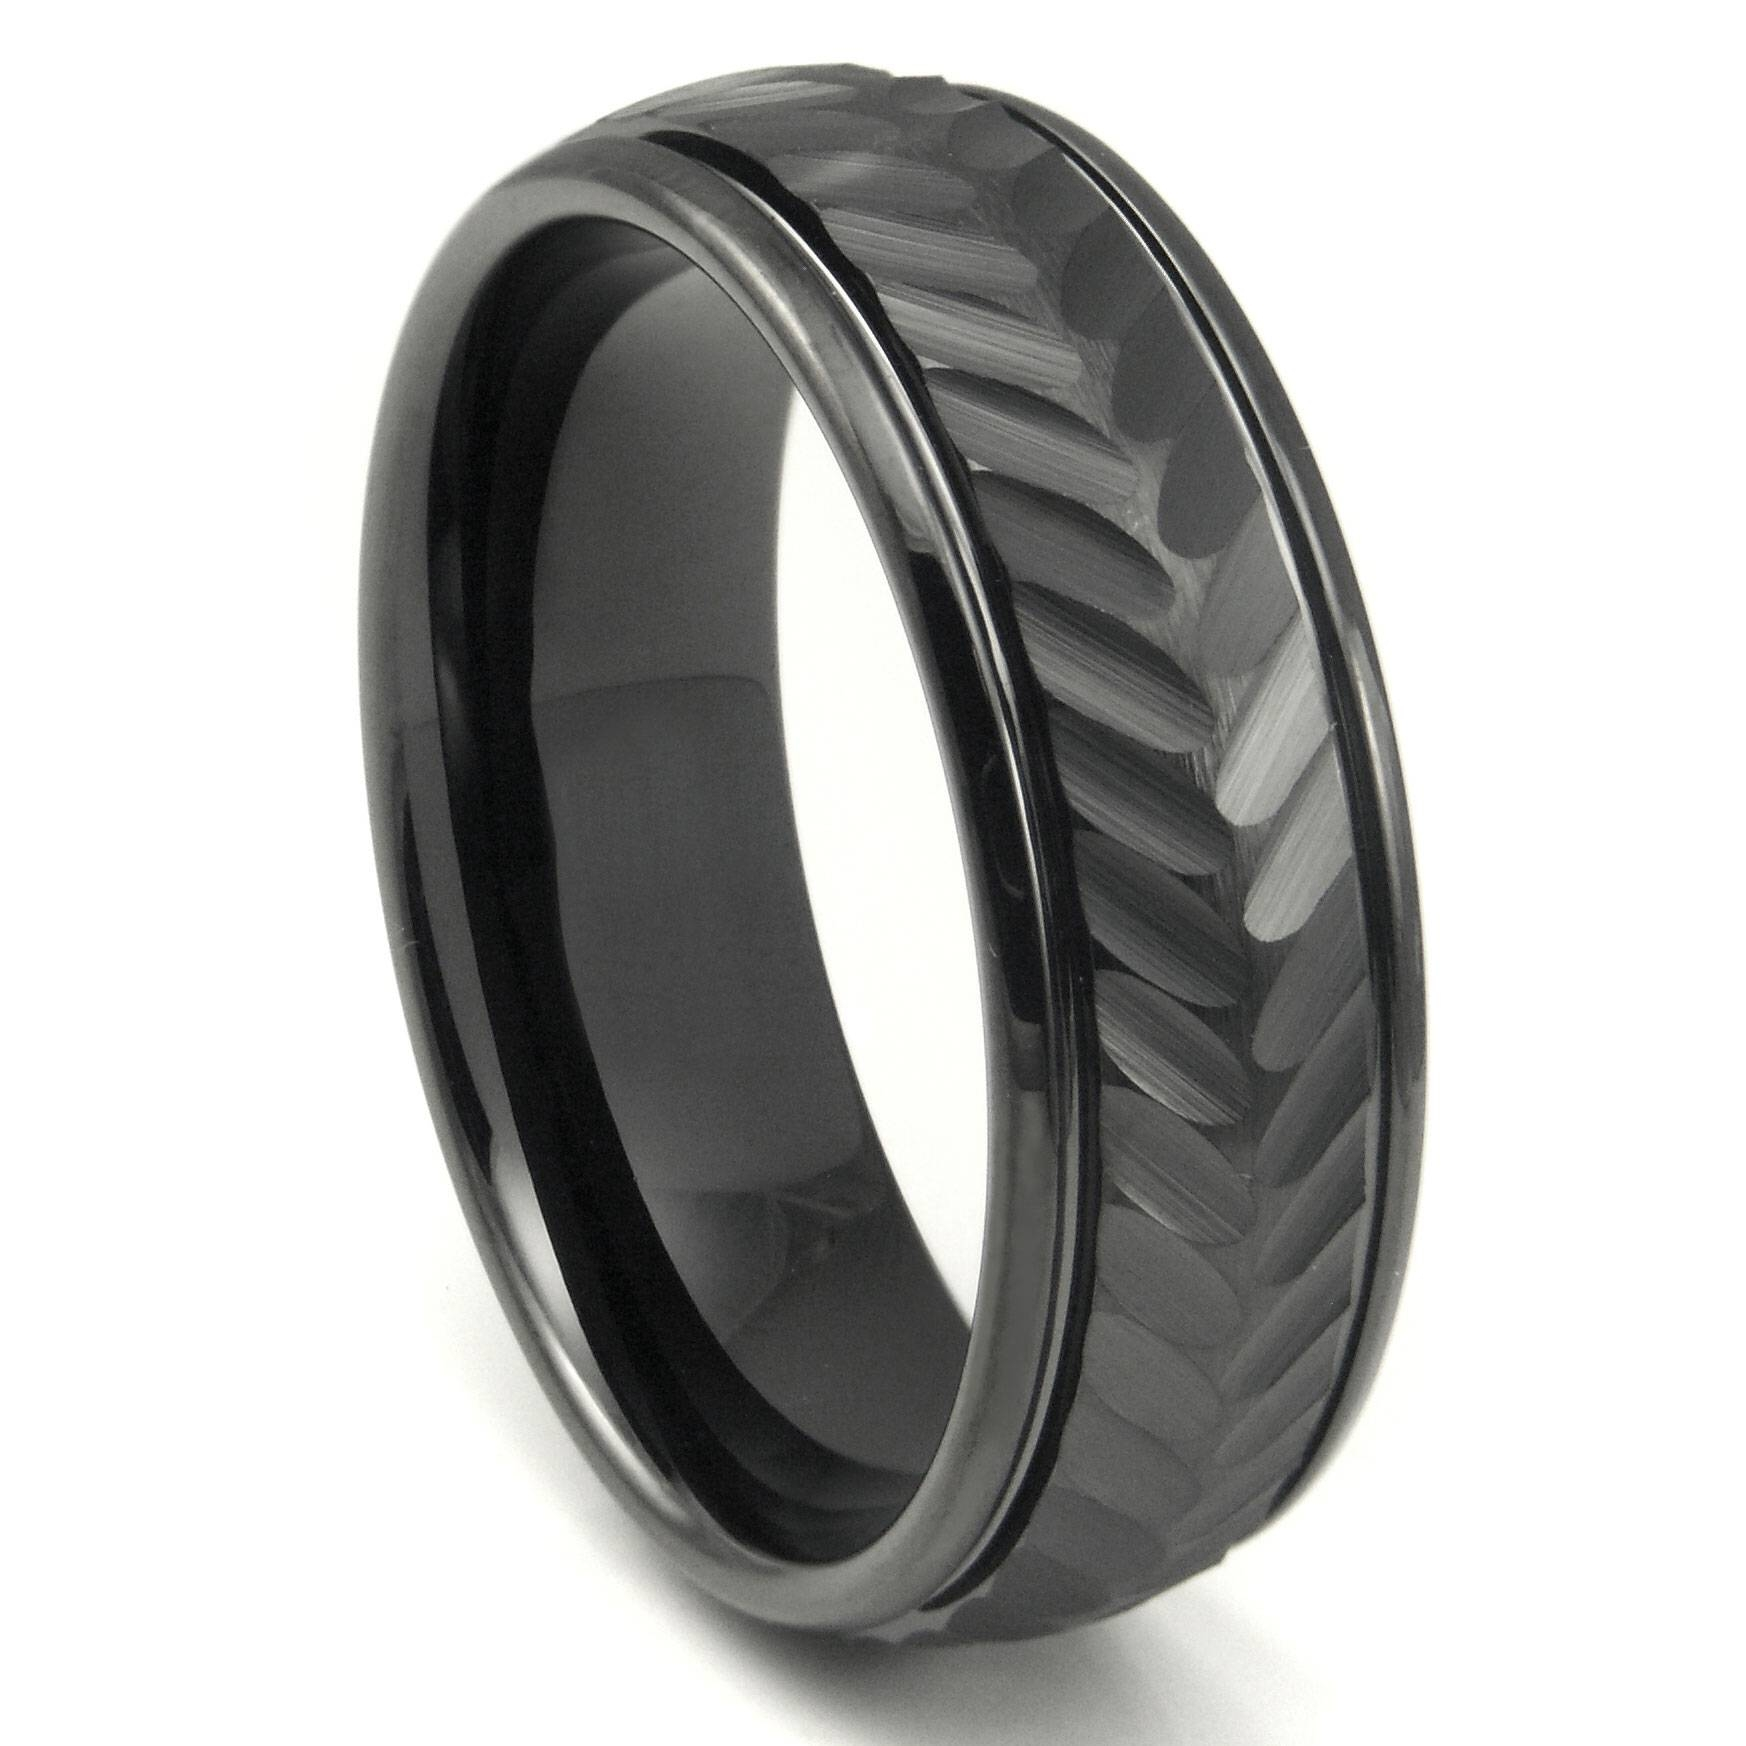 Black Tungsten Carbide 8Mm Chevron Newport Wedding Band Ring Pertaining To Tungsten Wedding Bands (Gallery 2 of 15)